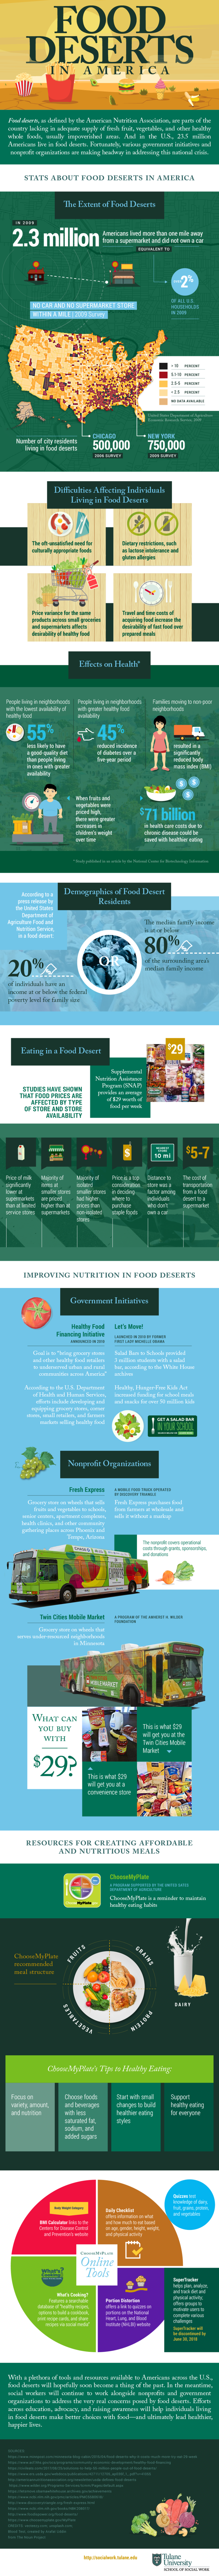 A screen shot of the infographic